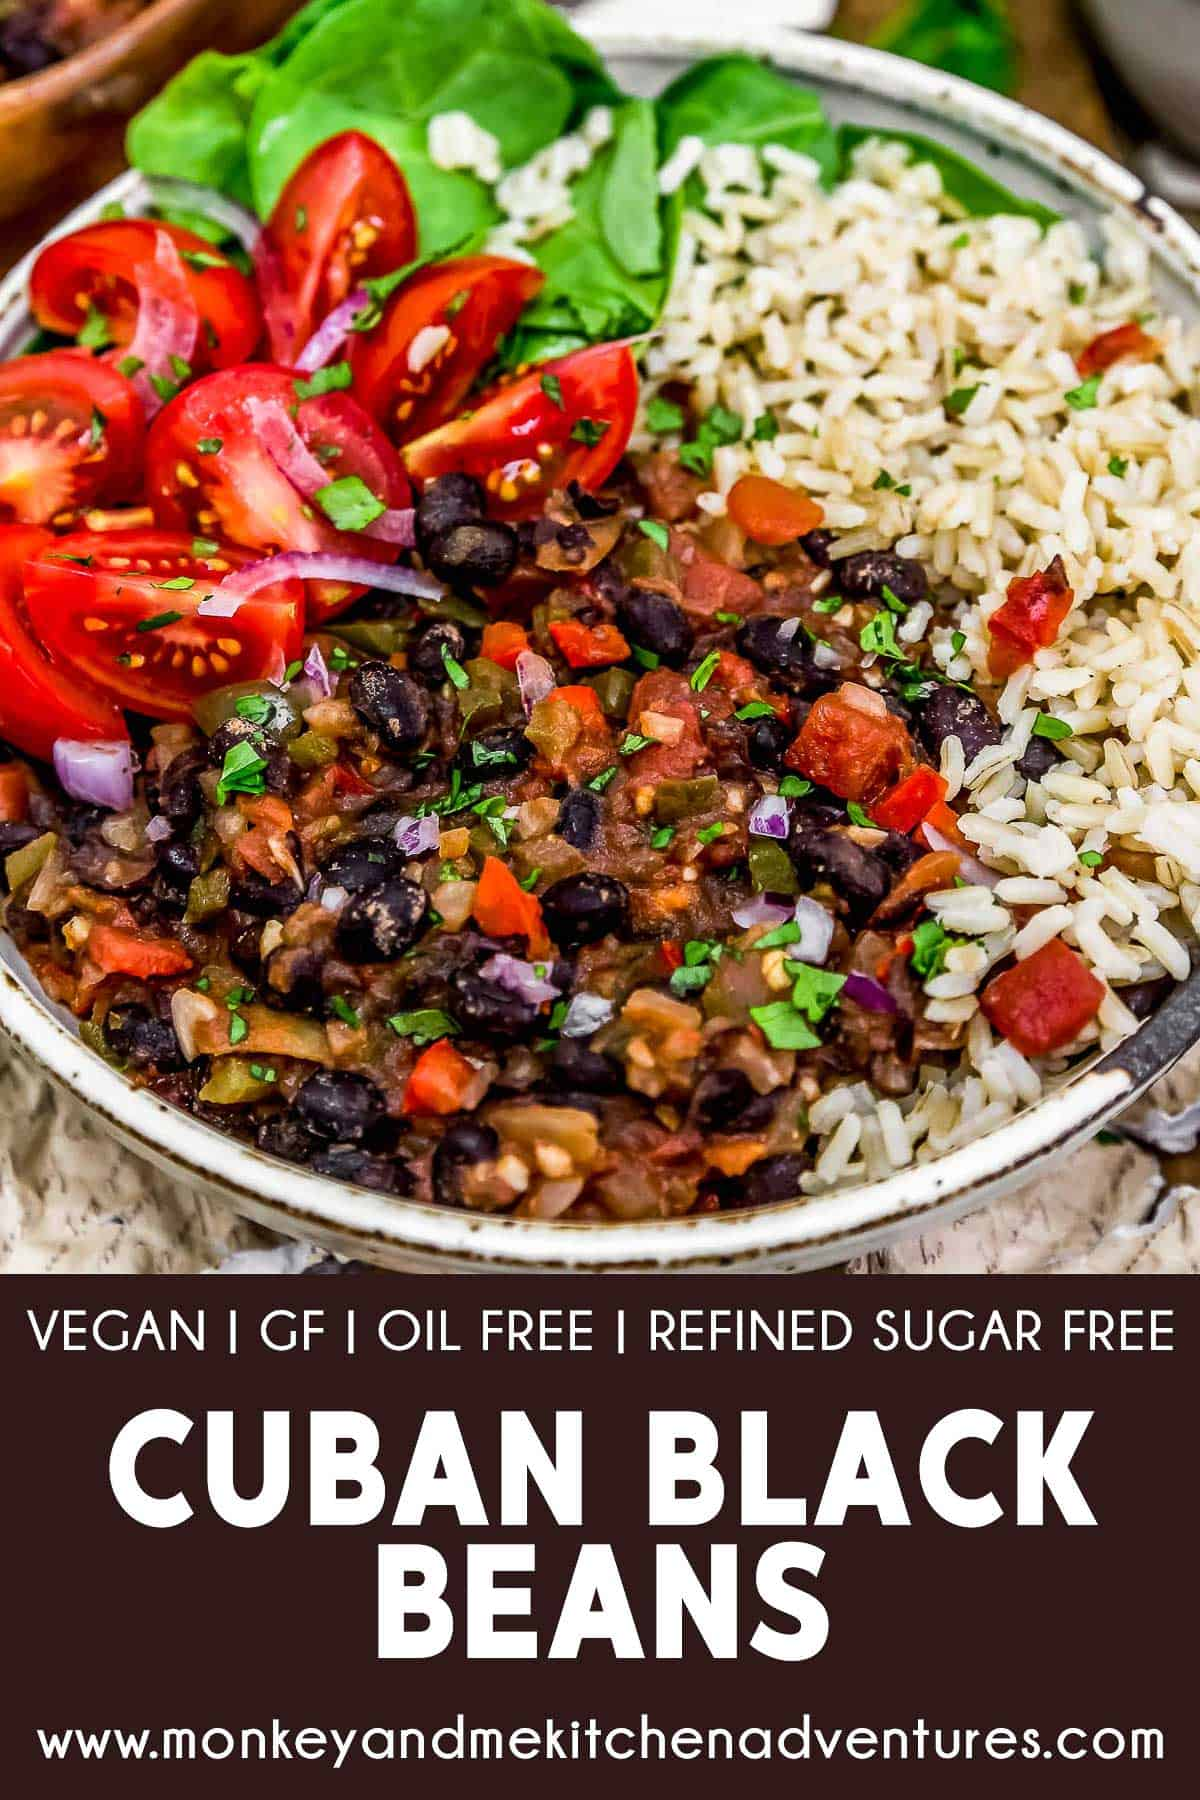 Cuban Black Beans with text description